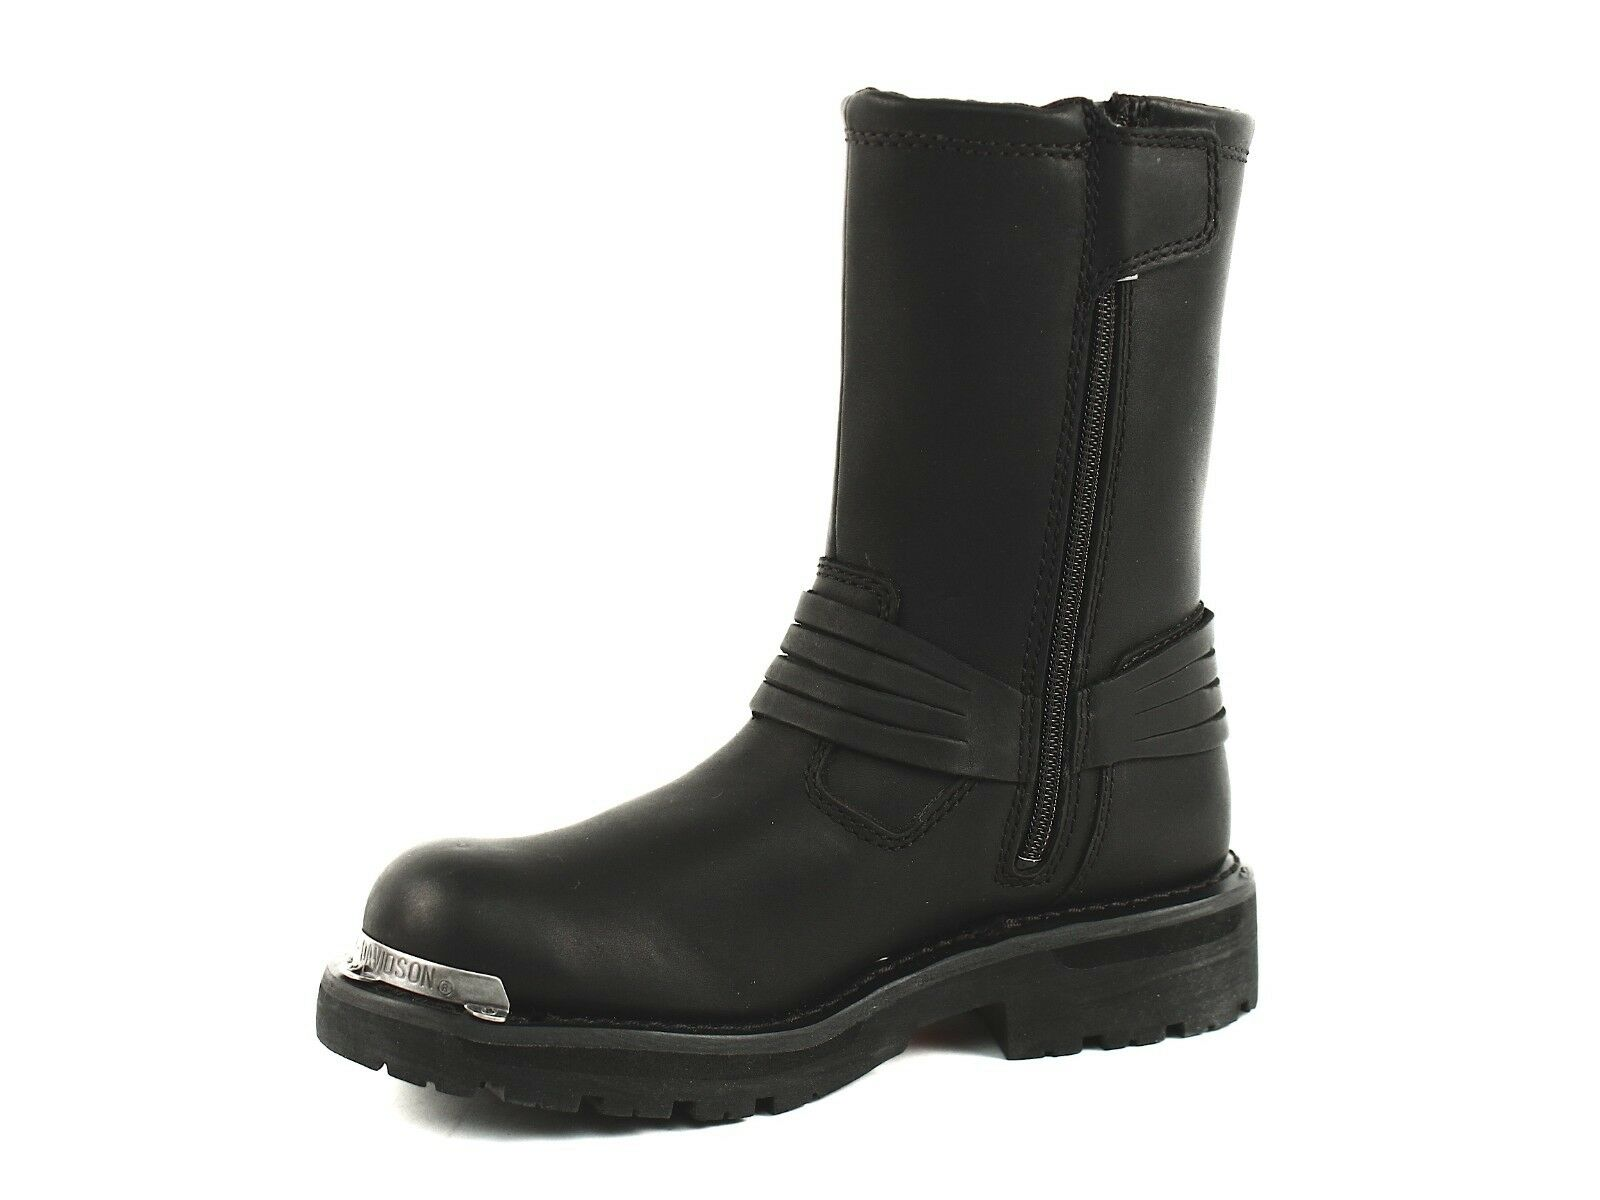 Harley Davidson SHANNON Womens Pull On Zip  Riding Riding Riding Black Leather Boot US-6 3c6c6a